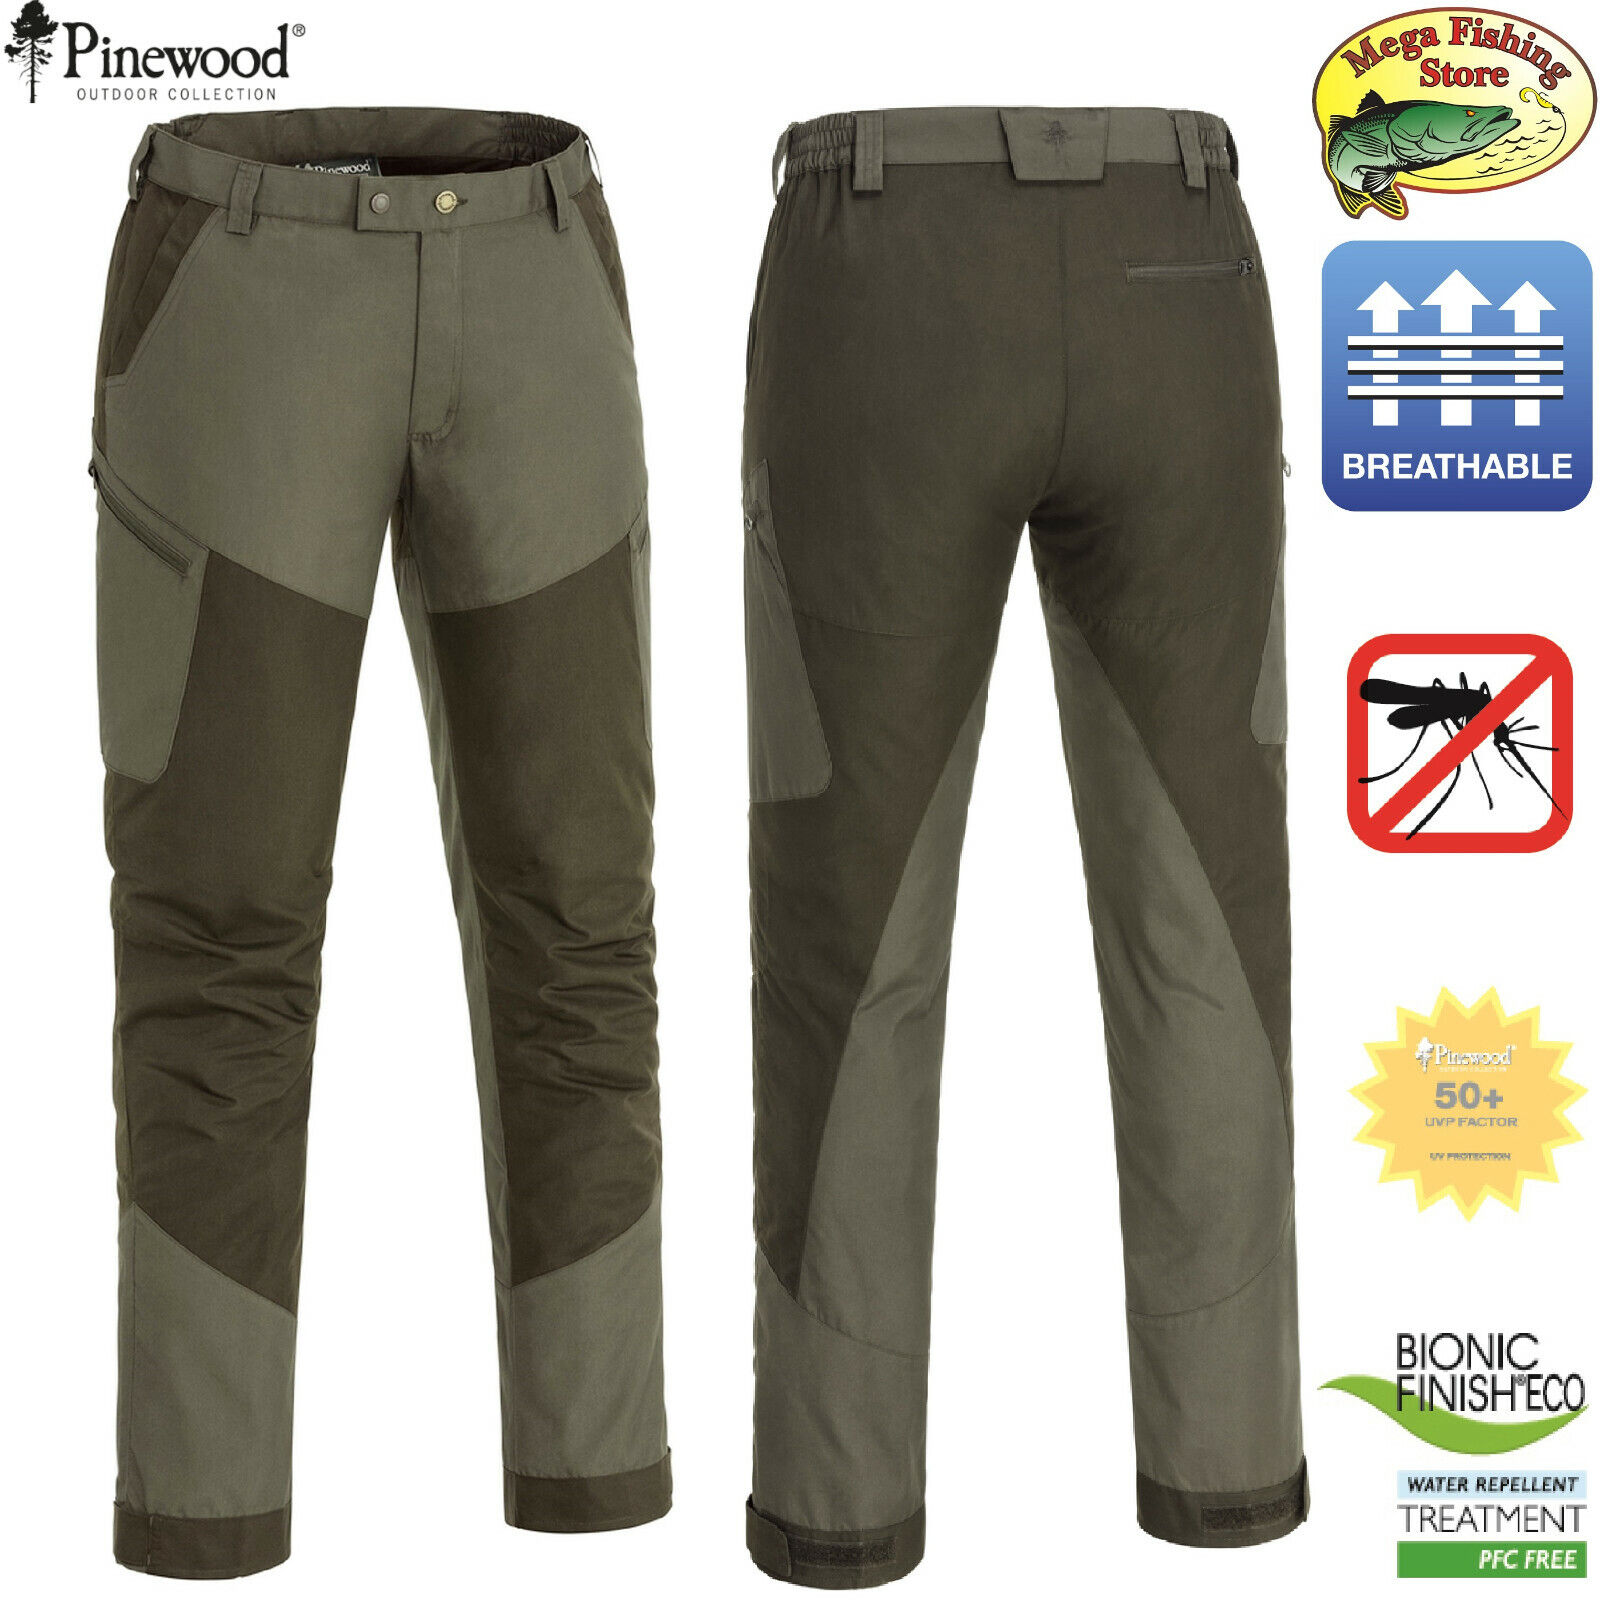 Pinewood 5097 Tiveden TC Stretch Outdoor & Freizeit Hose - Angelhose Outdoorhose